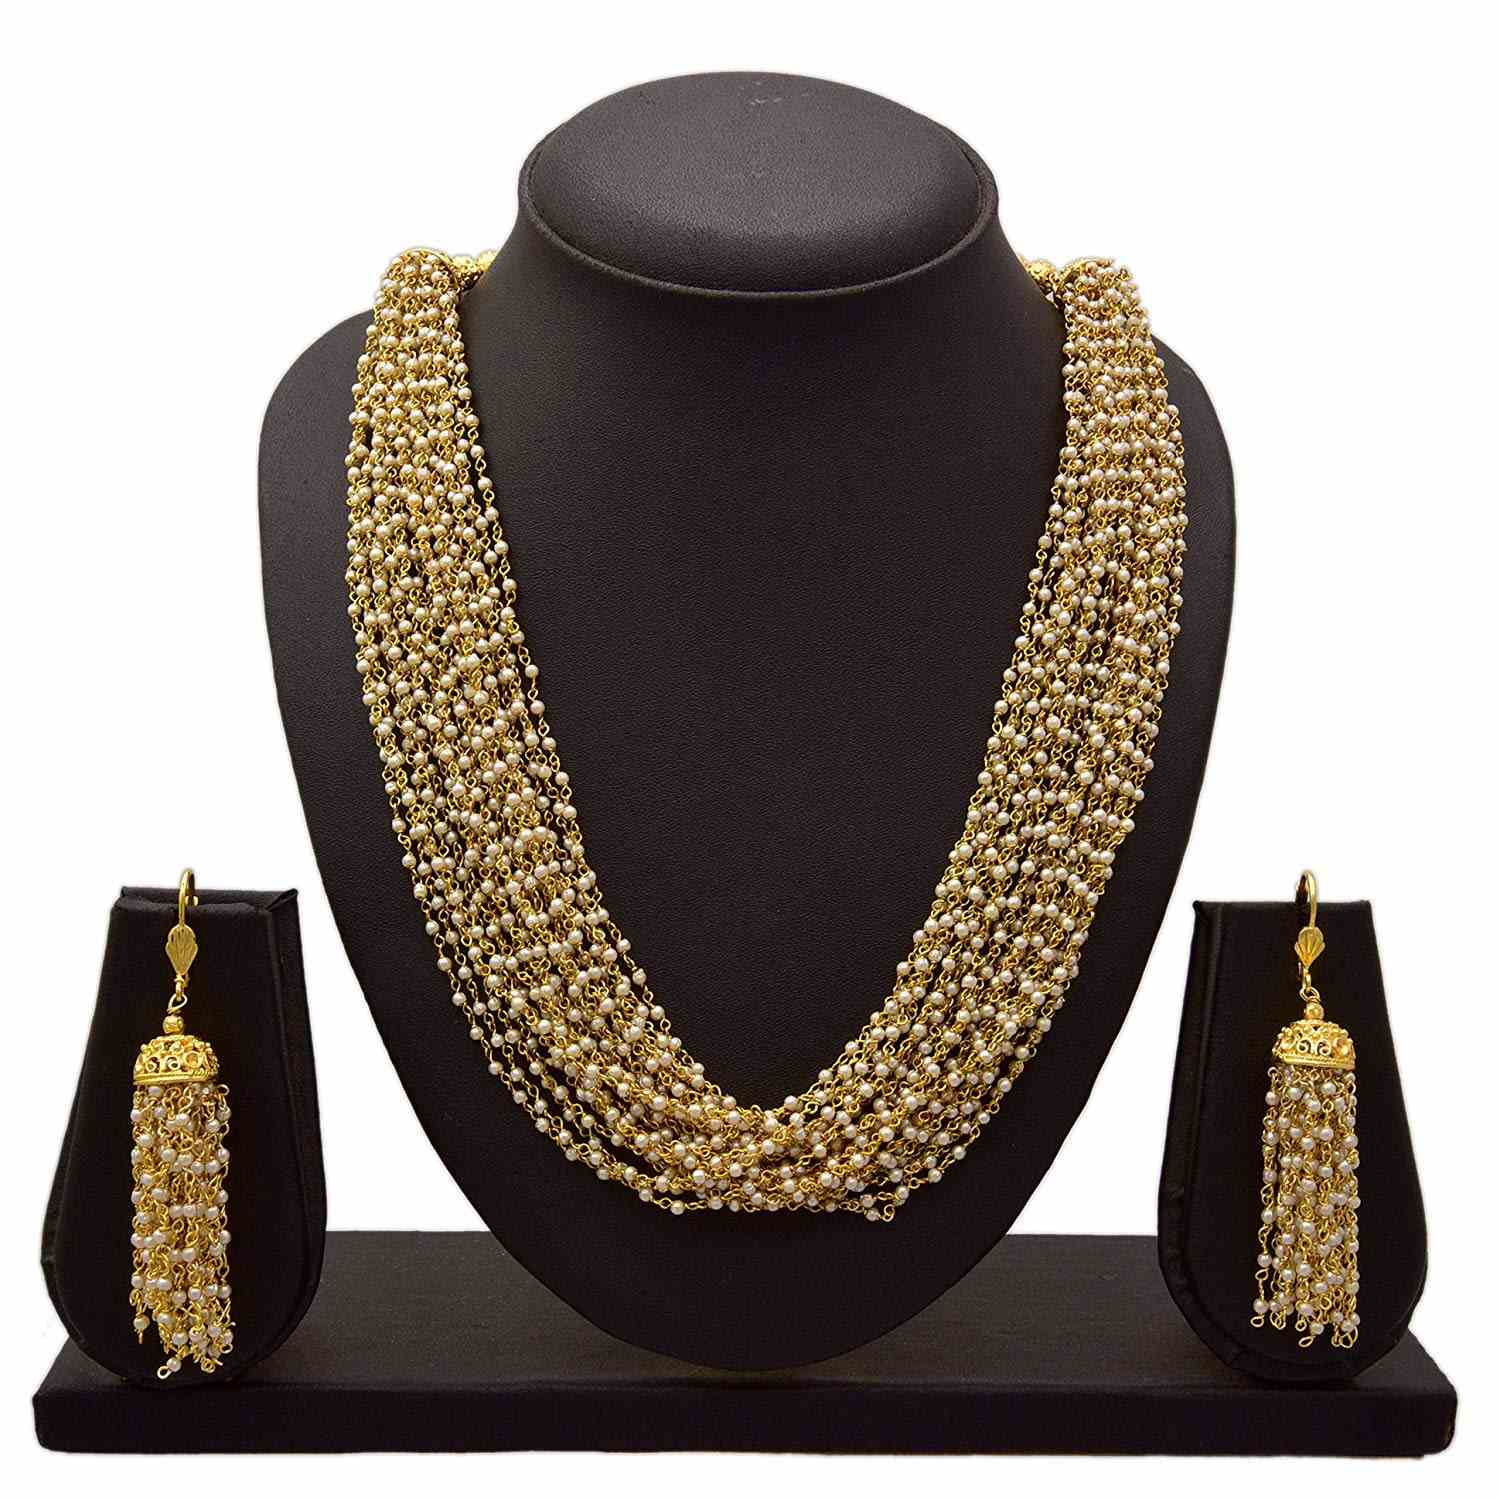 JFL - Traditional Ethnic One Gram Gold Plated Multi Stand Designer Necklace Set with Earring for Women & Girls